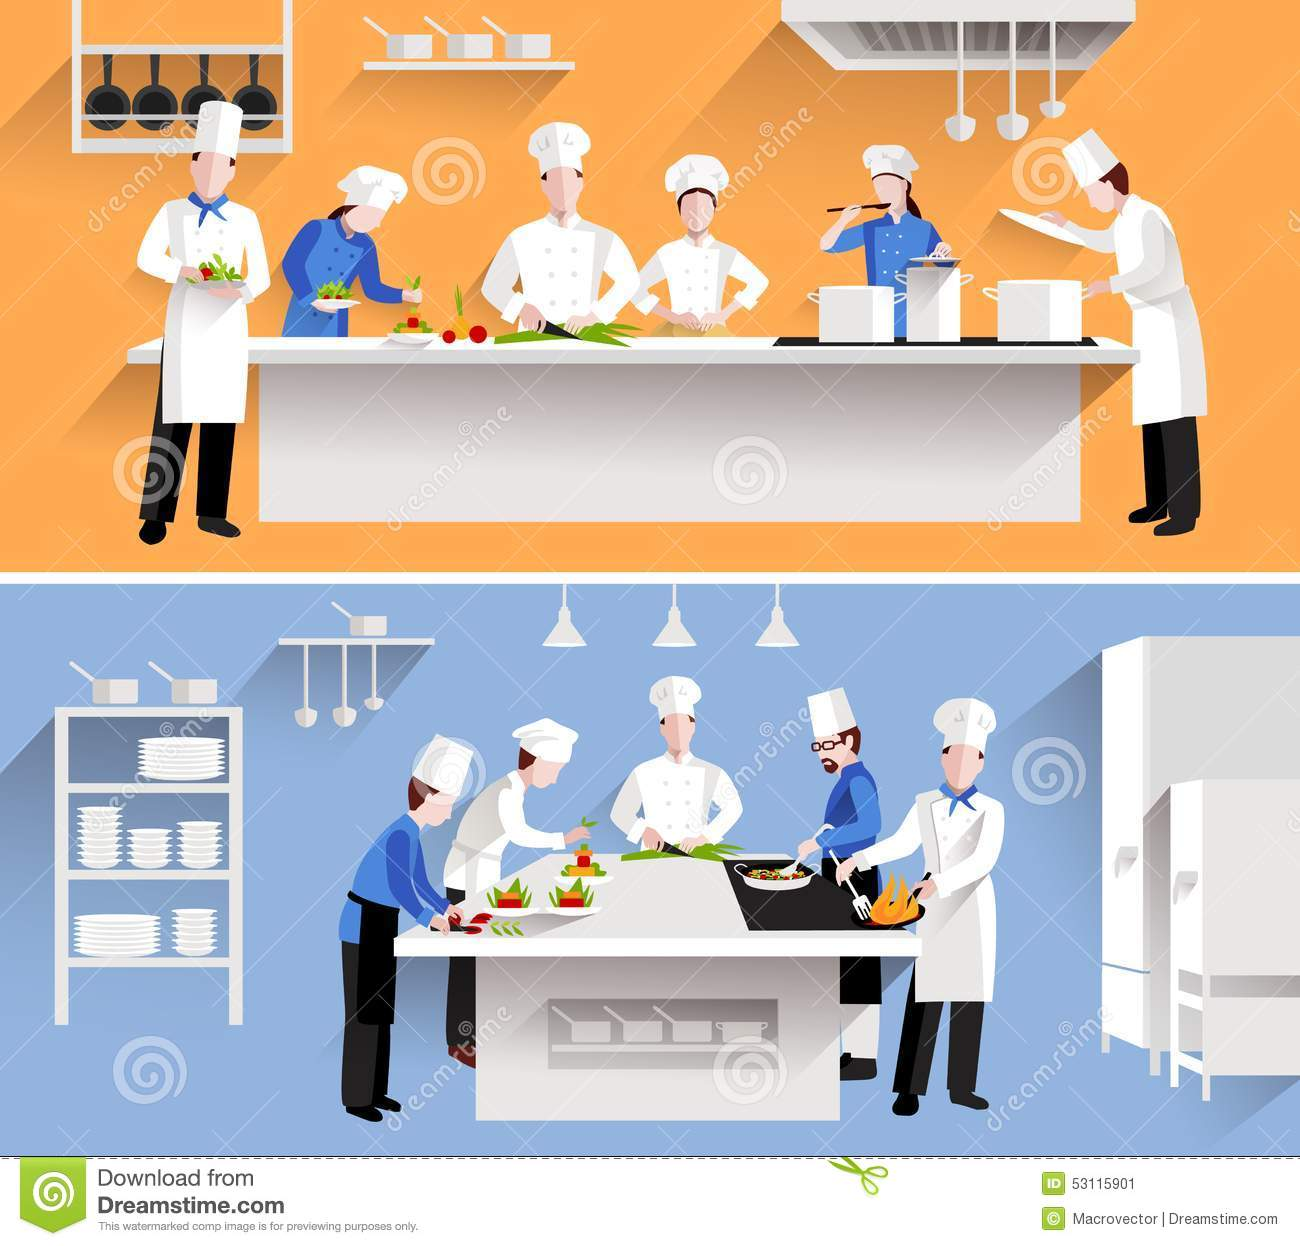 Restaurant Kitchen Illustration cooking process illustration stock vector - image: 53115901